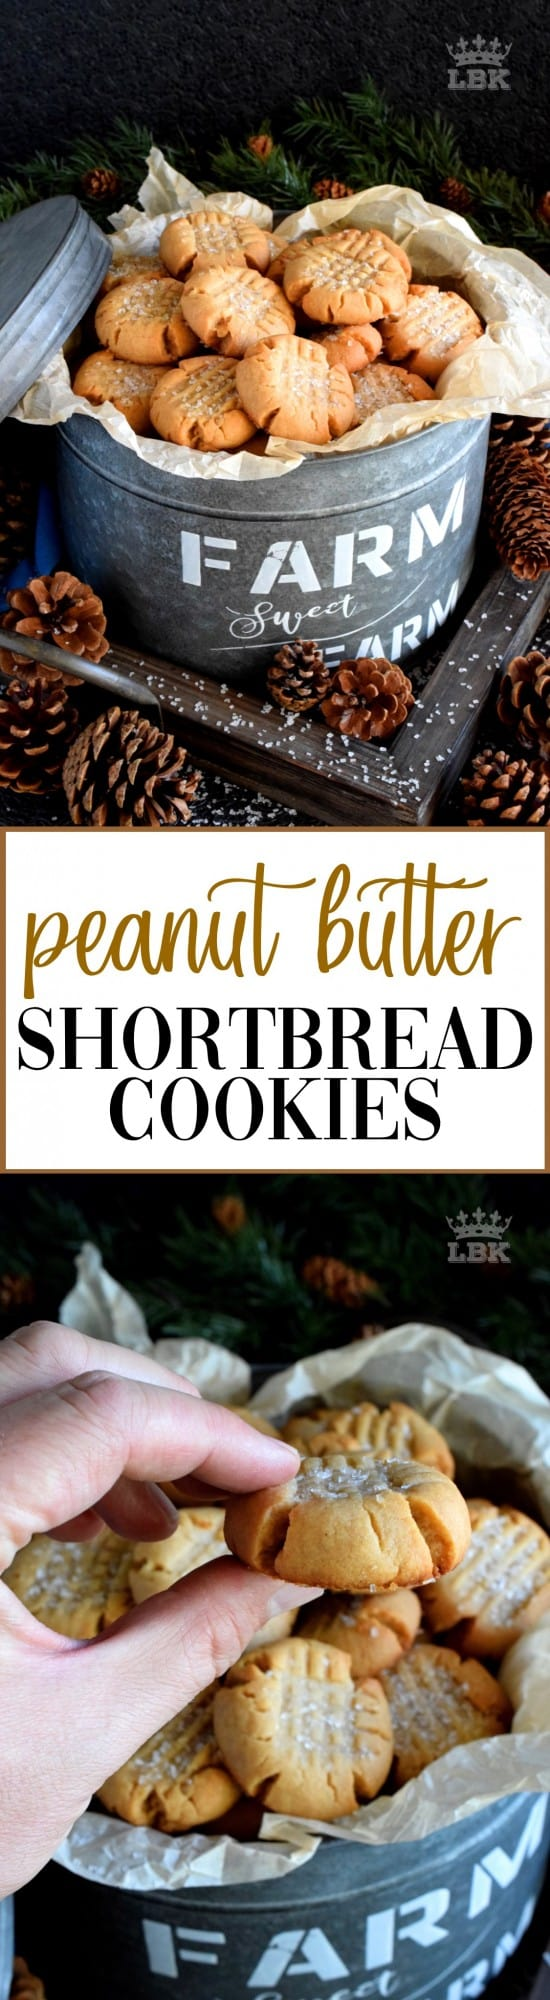 Peanut Butter Shortbread Cookies - Shortbread is a classic, but adding peanut butter to your shortbread cookie recipe is a great way to add a little holiday flair! #shortbread #peanutbutter #cookies #christmas #holiday #baking